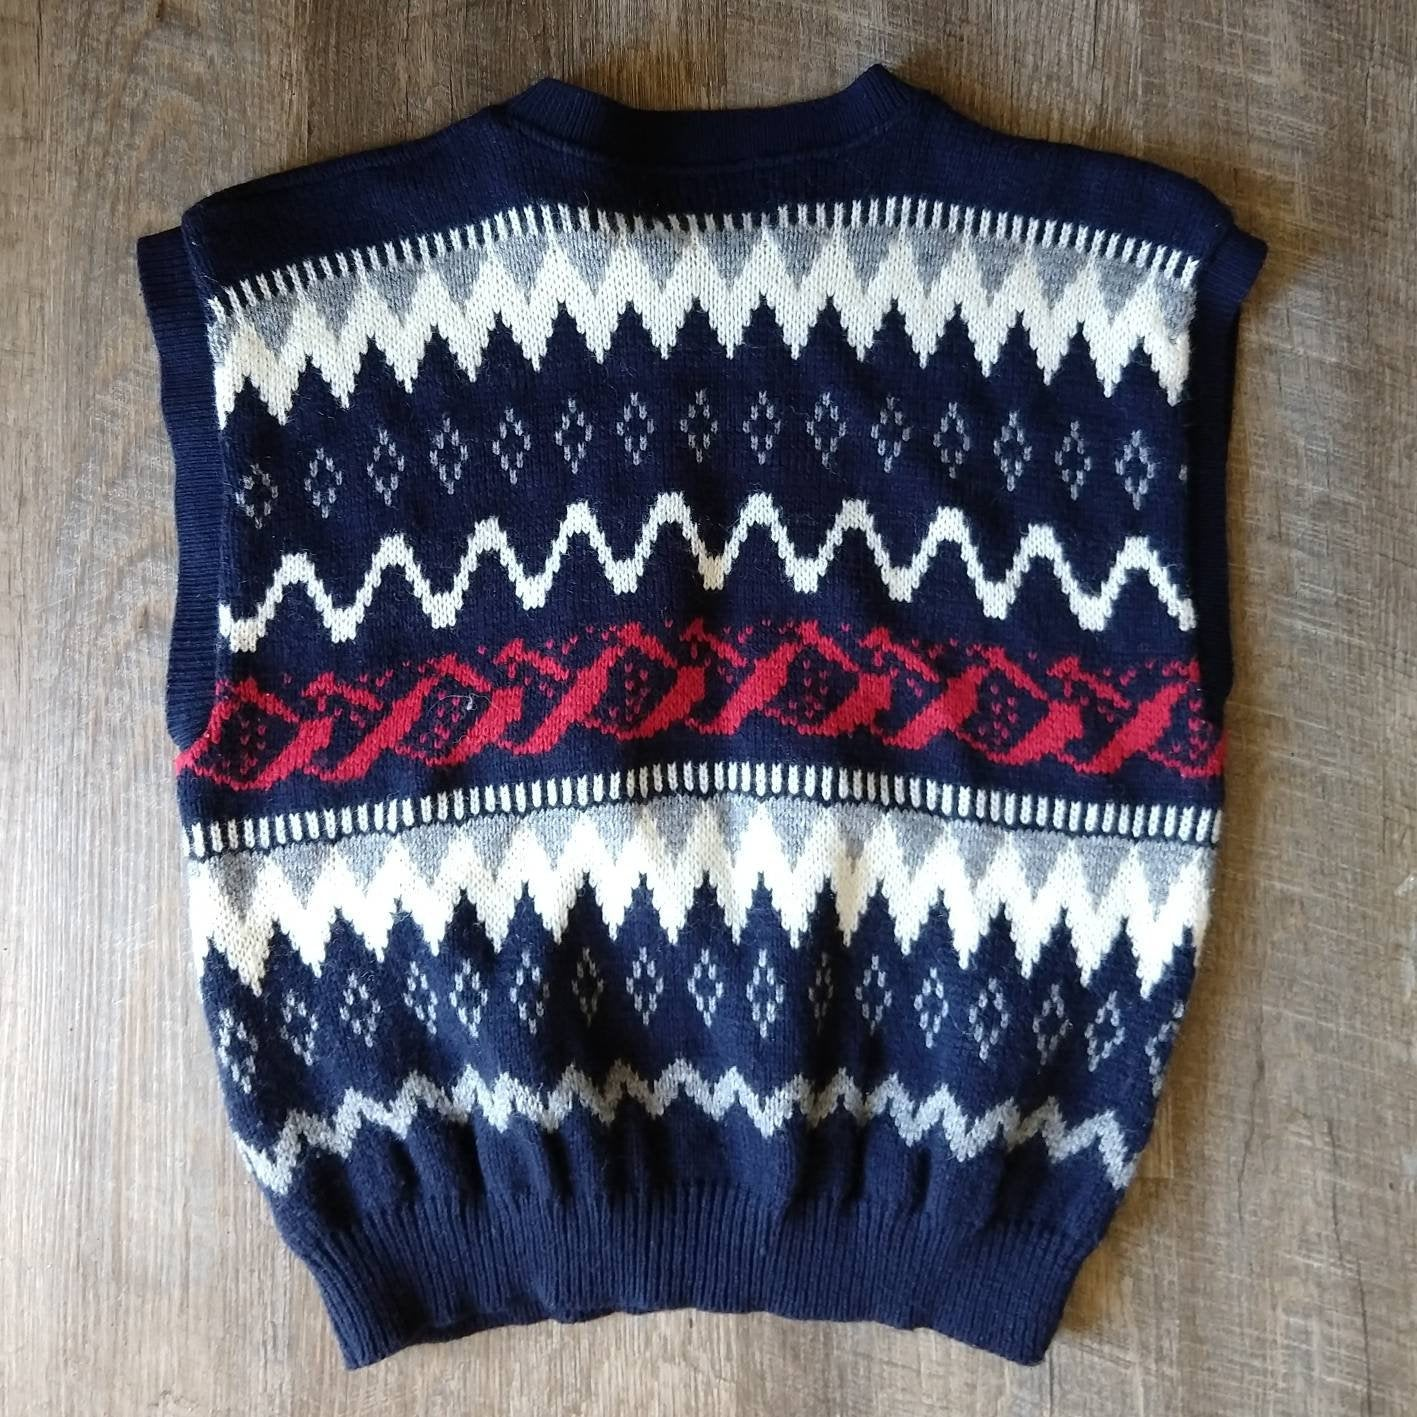 SWEATER VEST SHELL sleeveless 1980s 80s S M (H2)